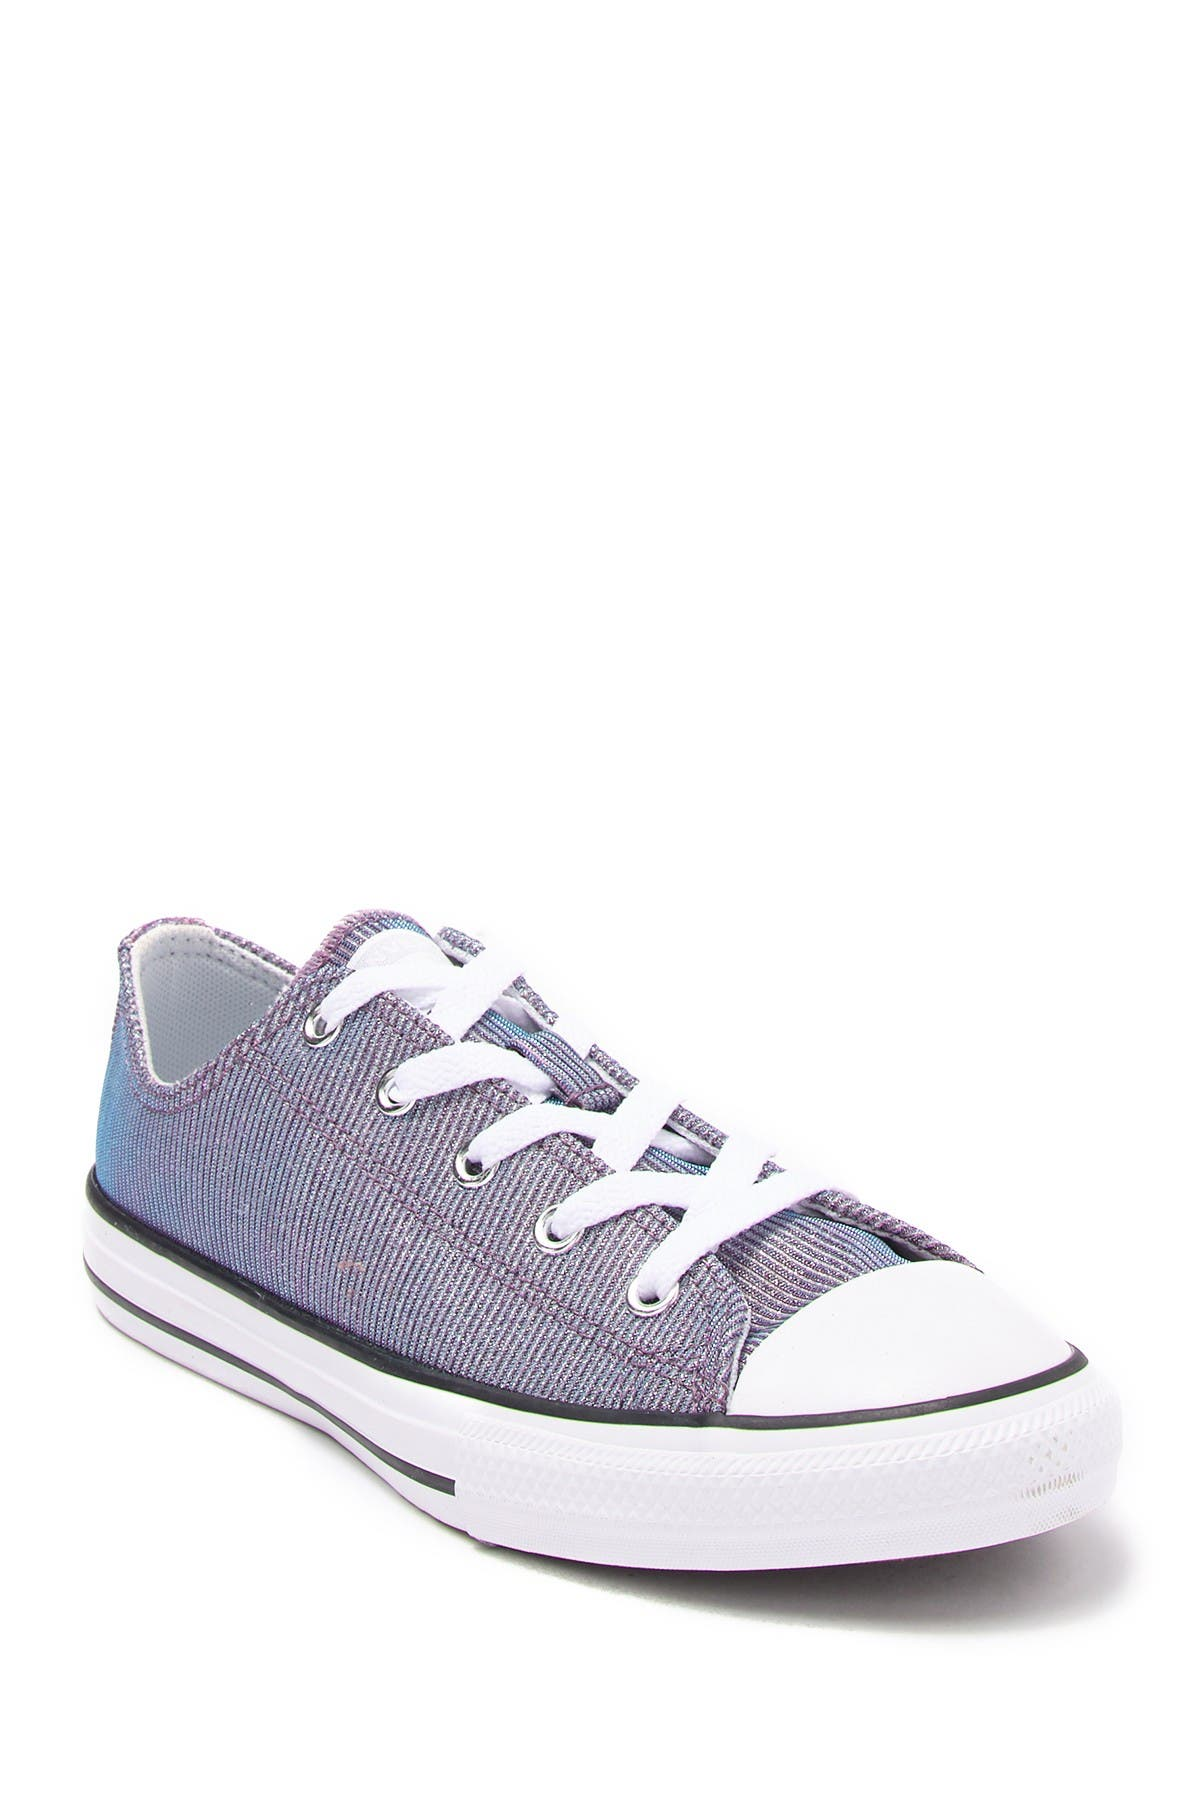 Image of Converse Oxford Sneaker